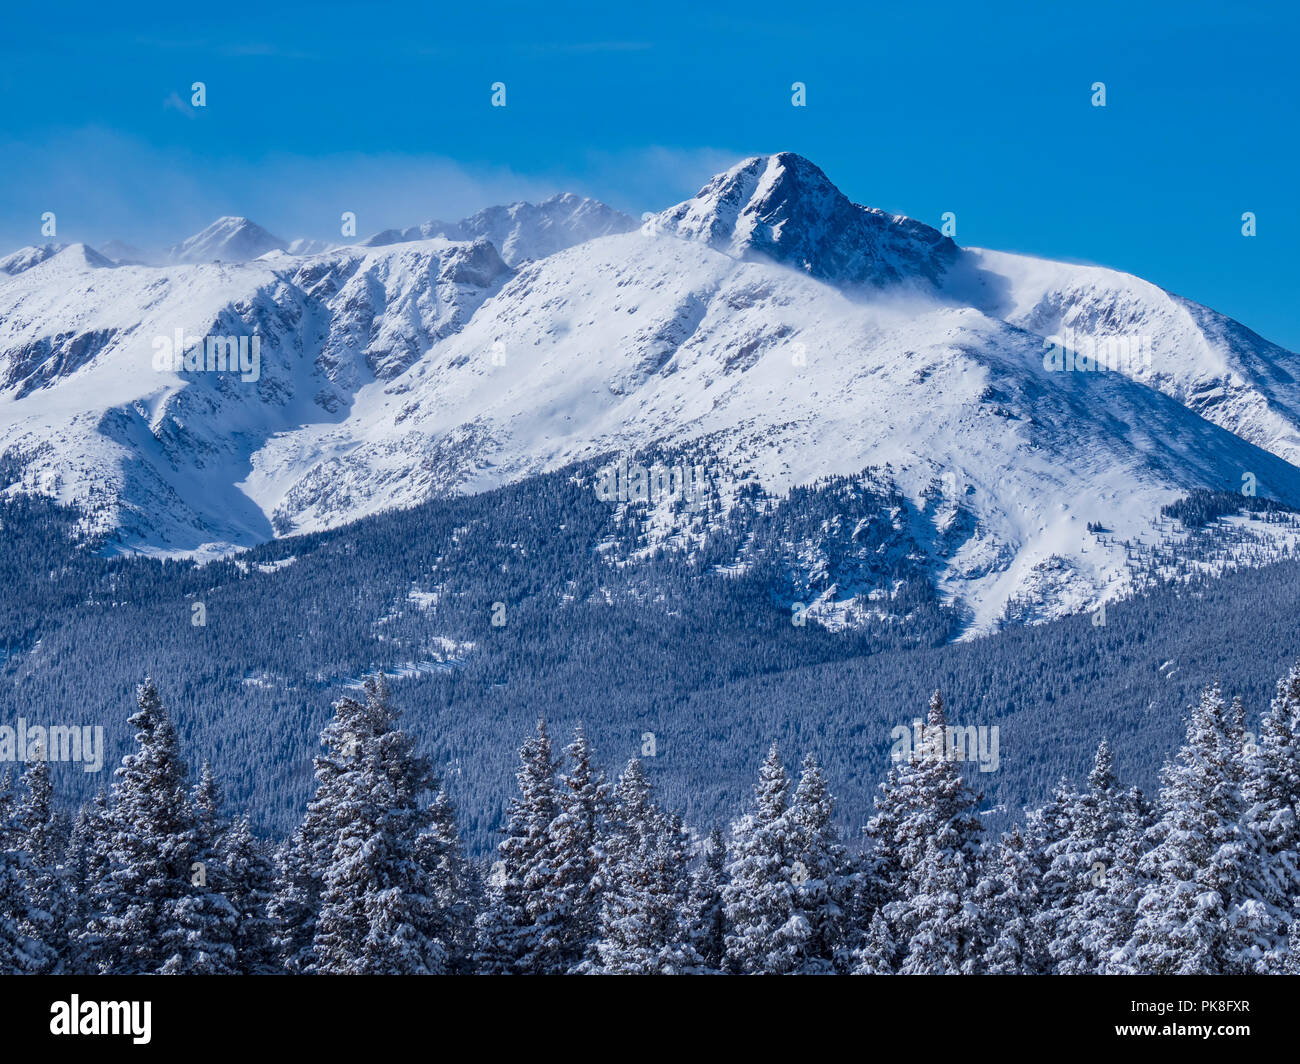 Mount of the Holy Cross from Belle's Camp, Blue Sky Basin, winter, Vail Ski Resort, Vail, Colorado. - Stock Image